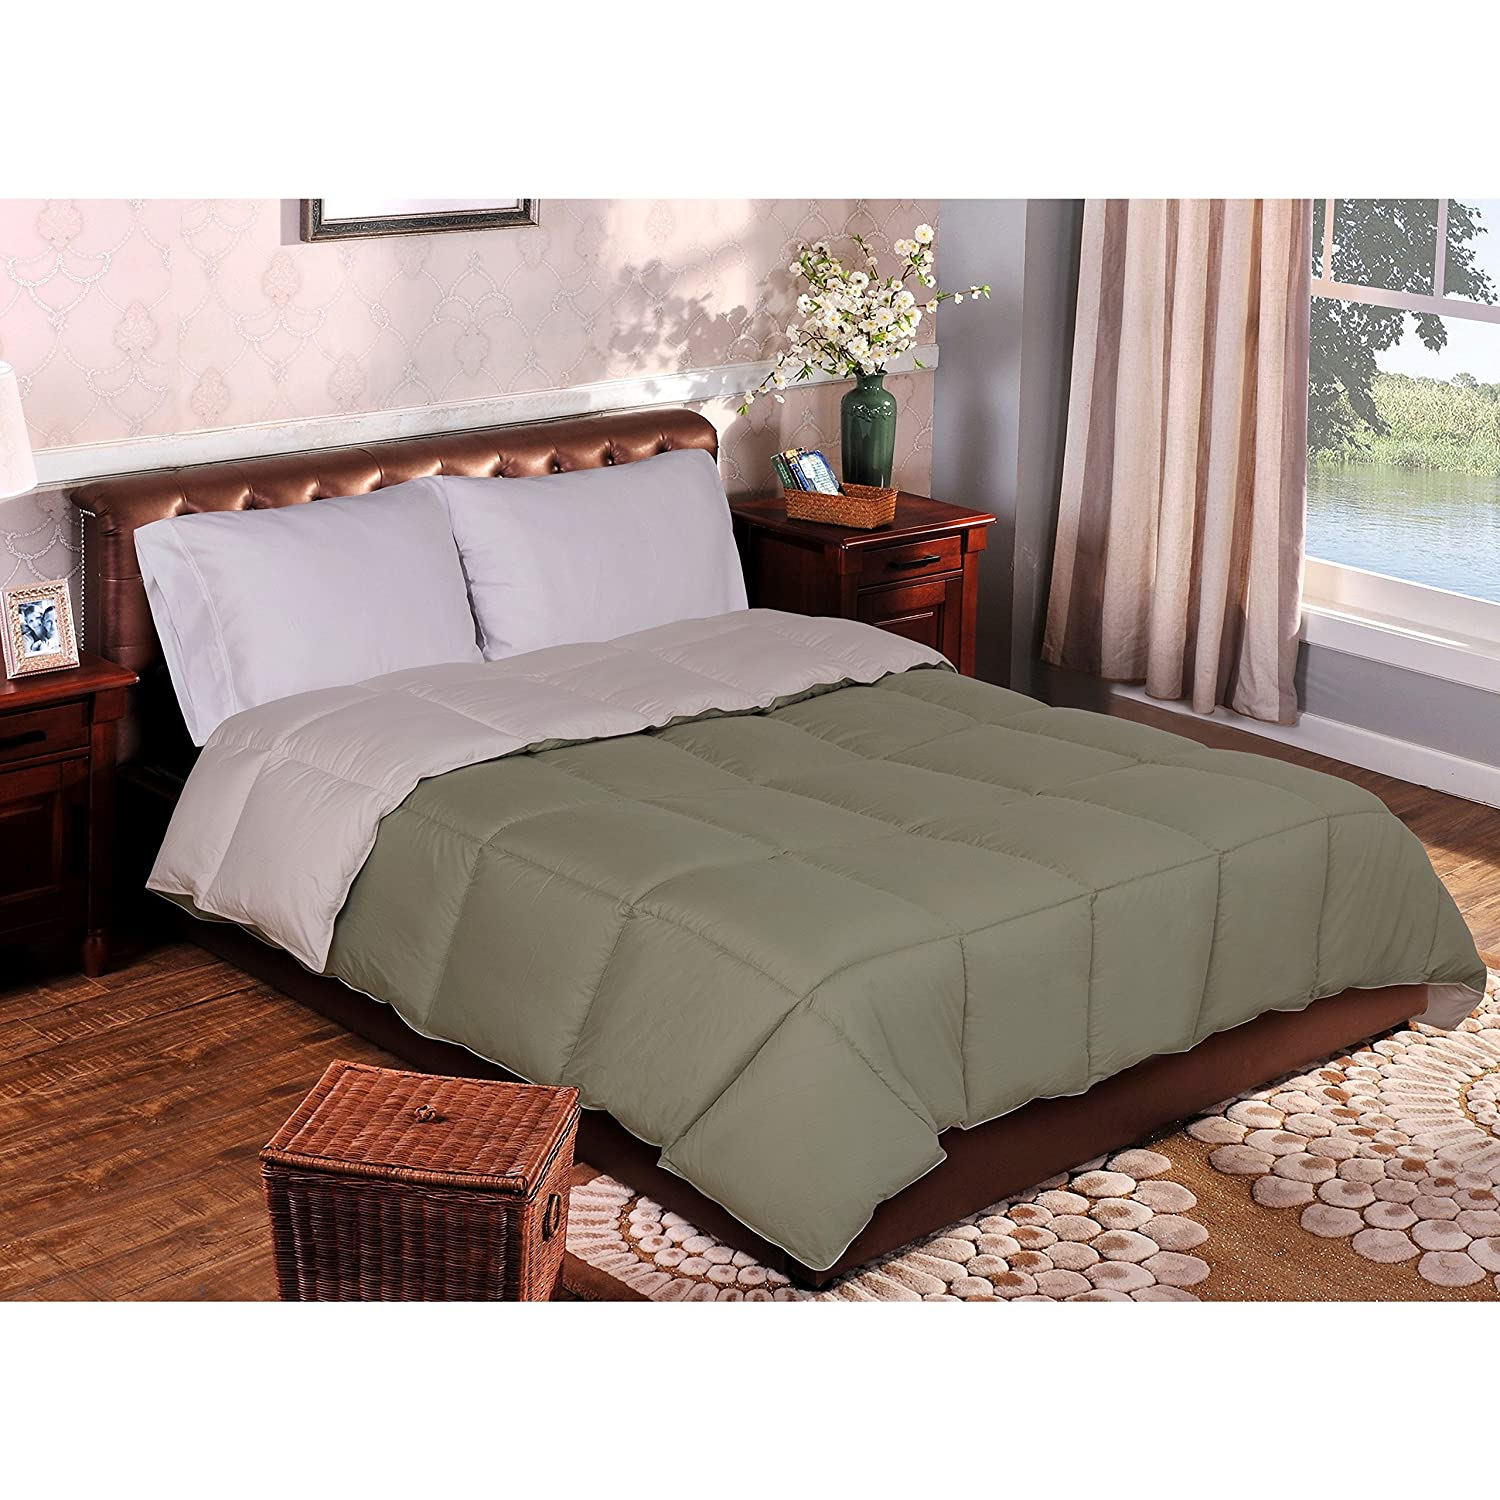 decoration comforters set bedding sage queen comforter size brown sets luxury full new of